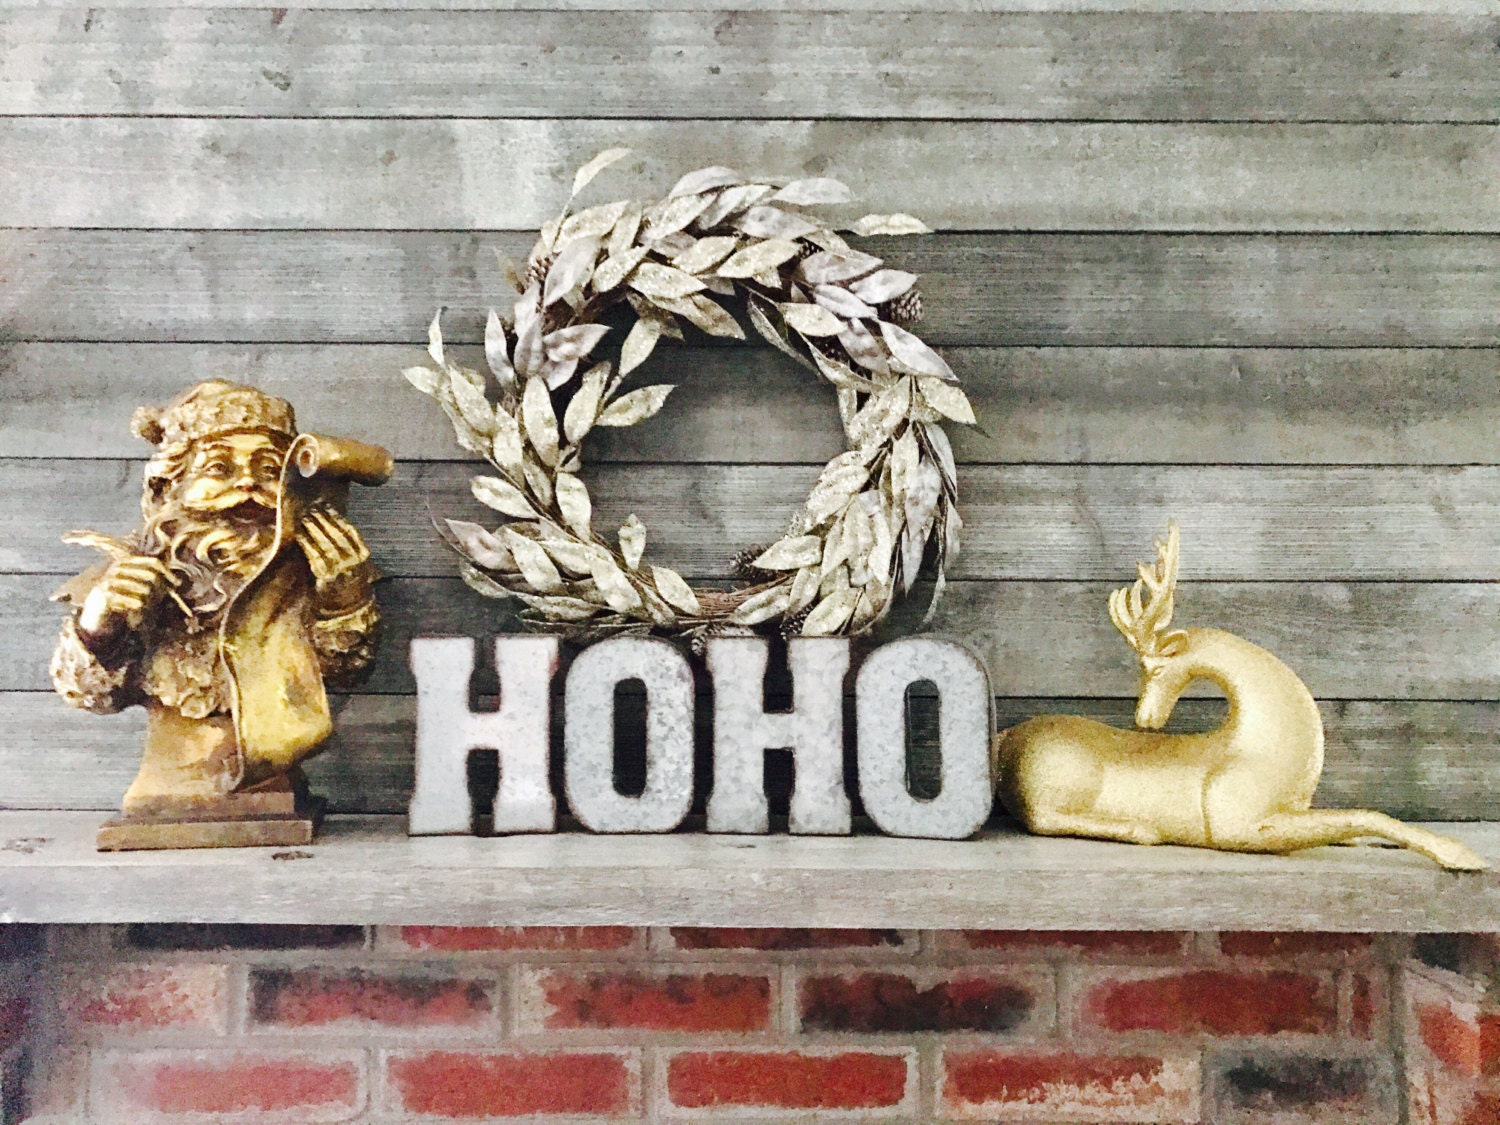 Small Galvanized Metal Letters Metal Letter Galvanized Wall Letter Small Metal Letters